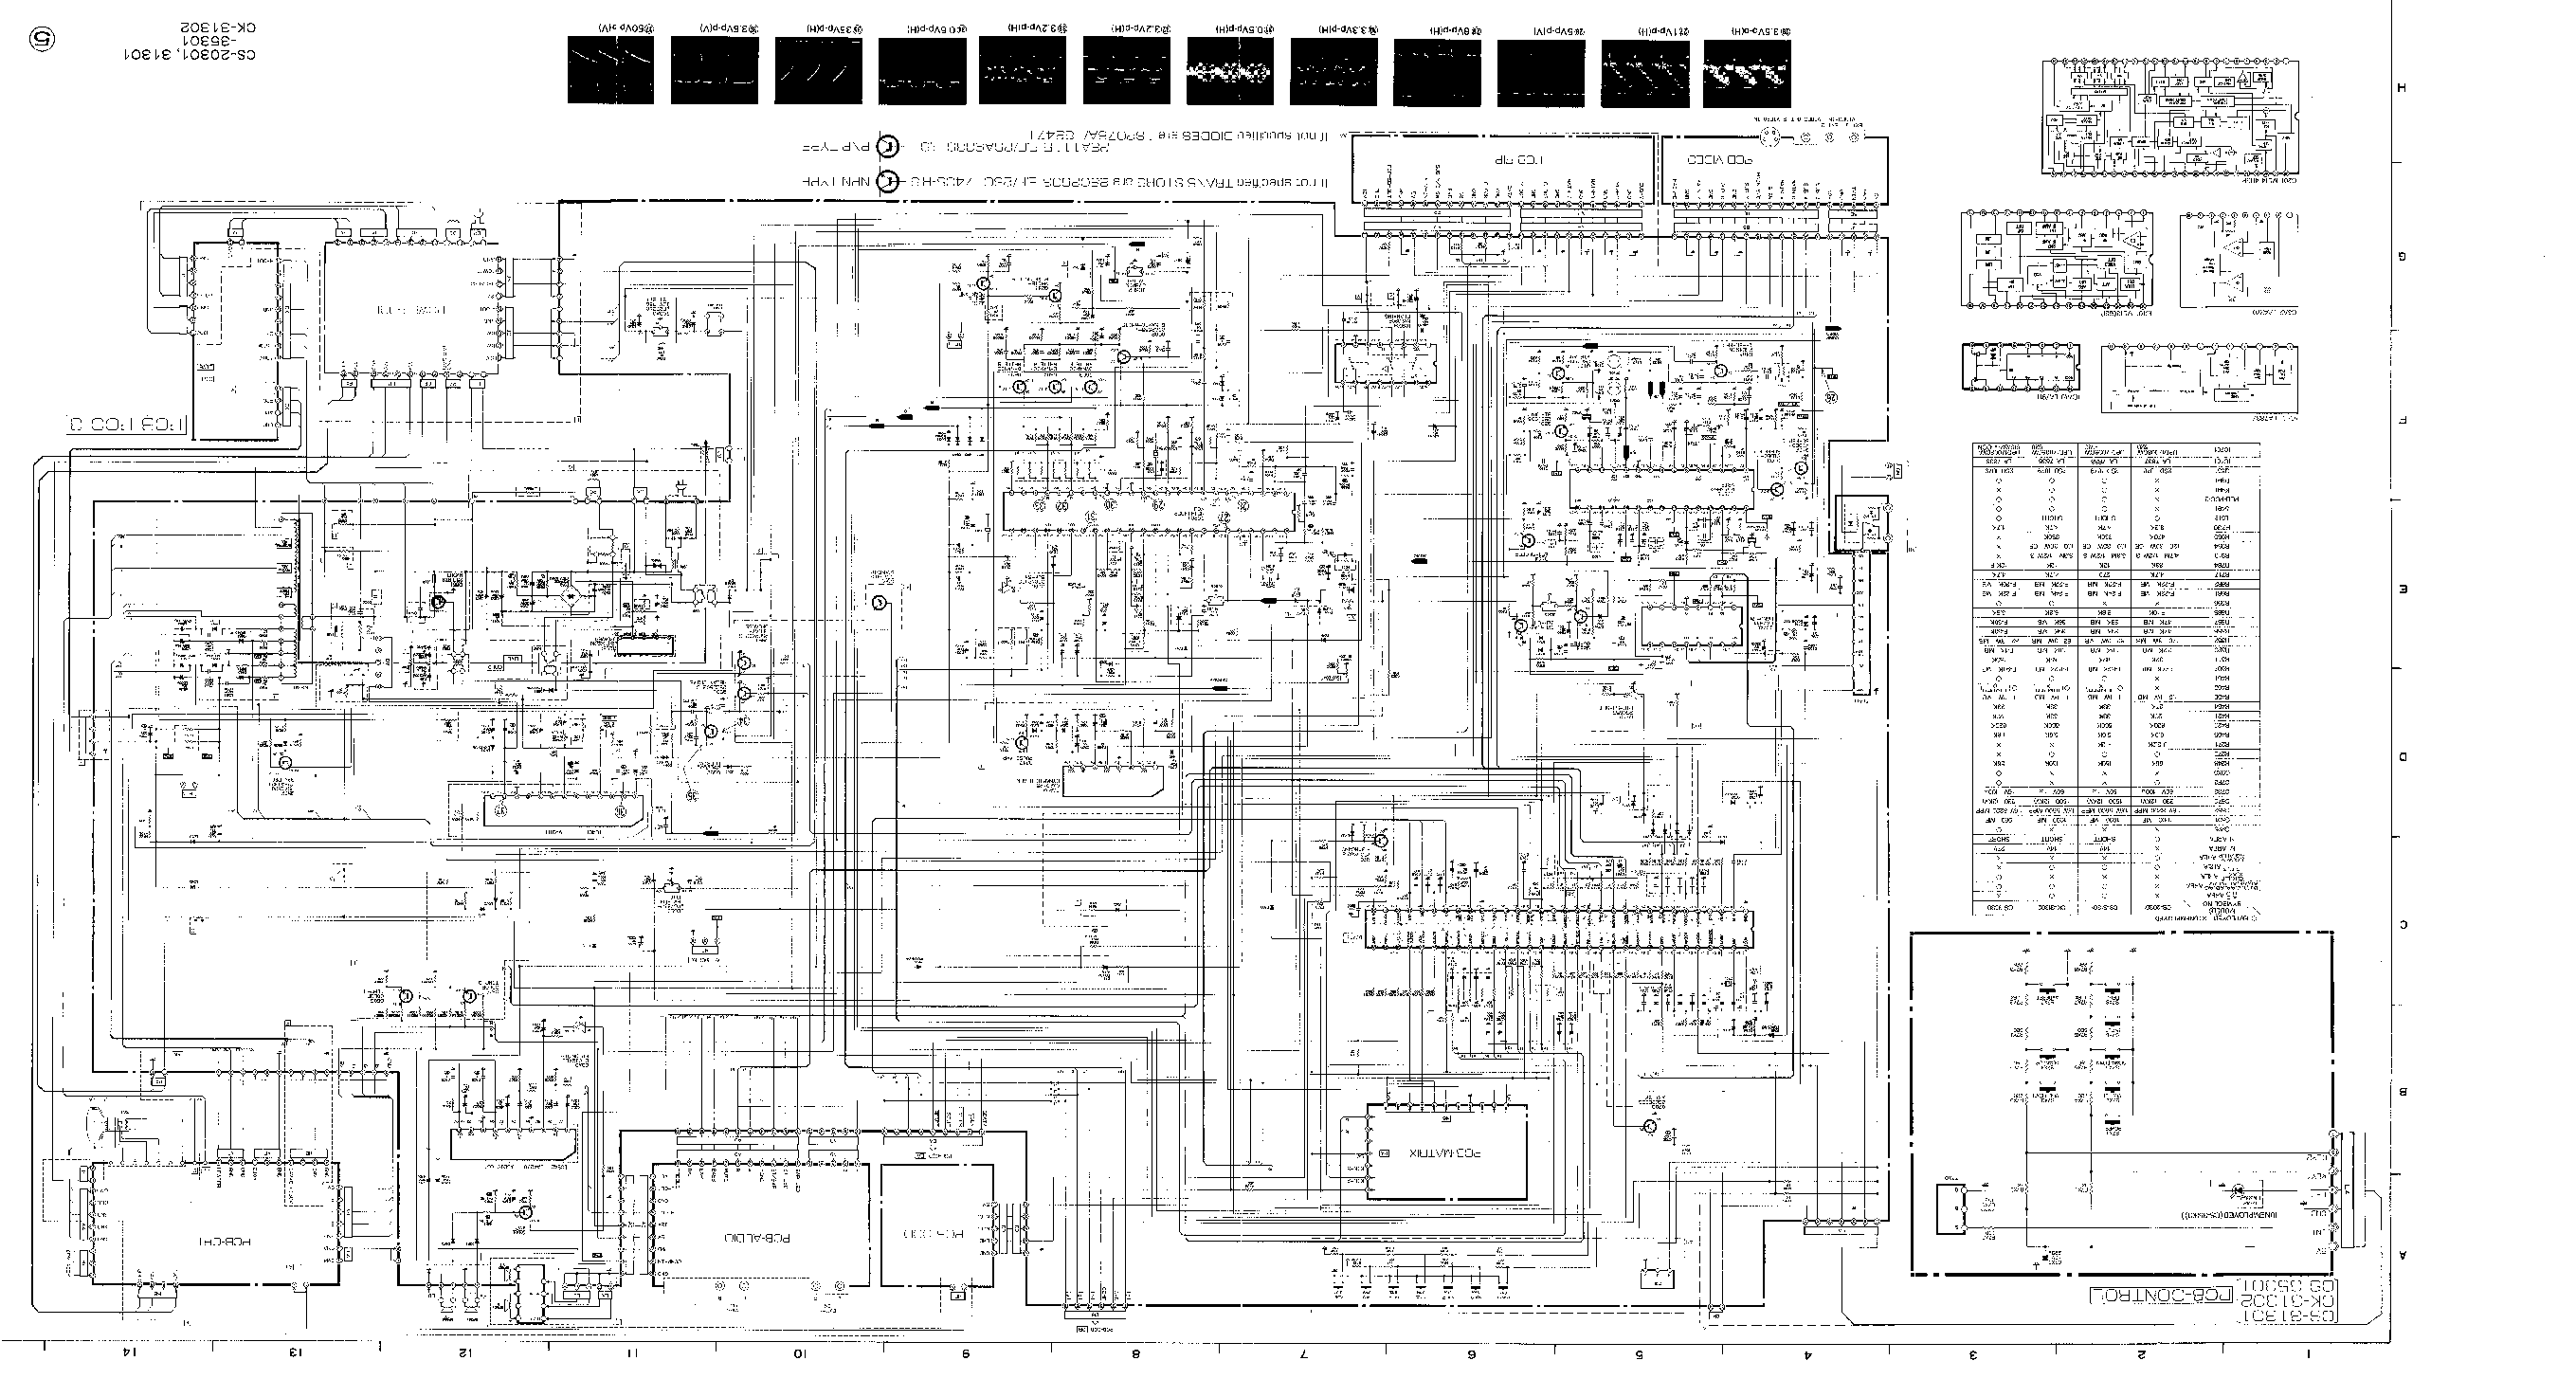 For Mitsubishi Tv Schematics - Auto Electrical Wiring Diagram